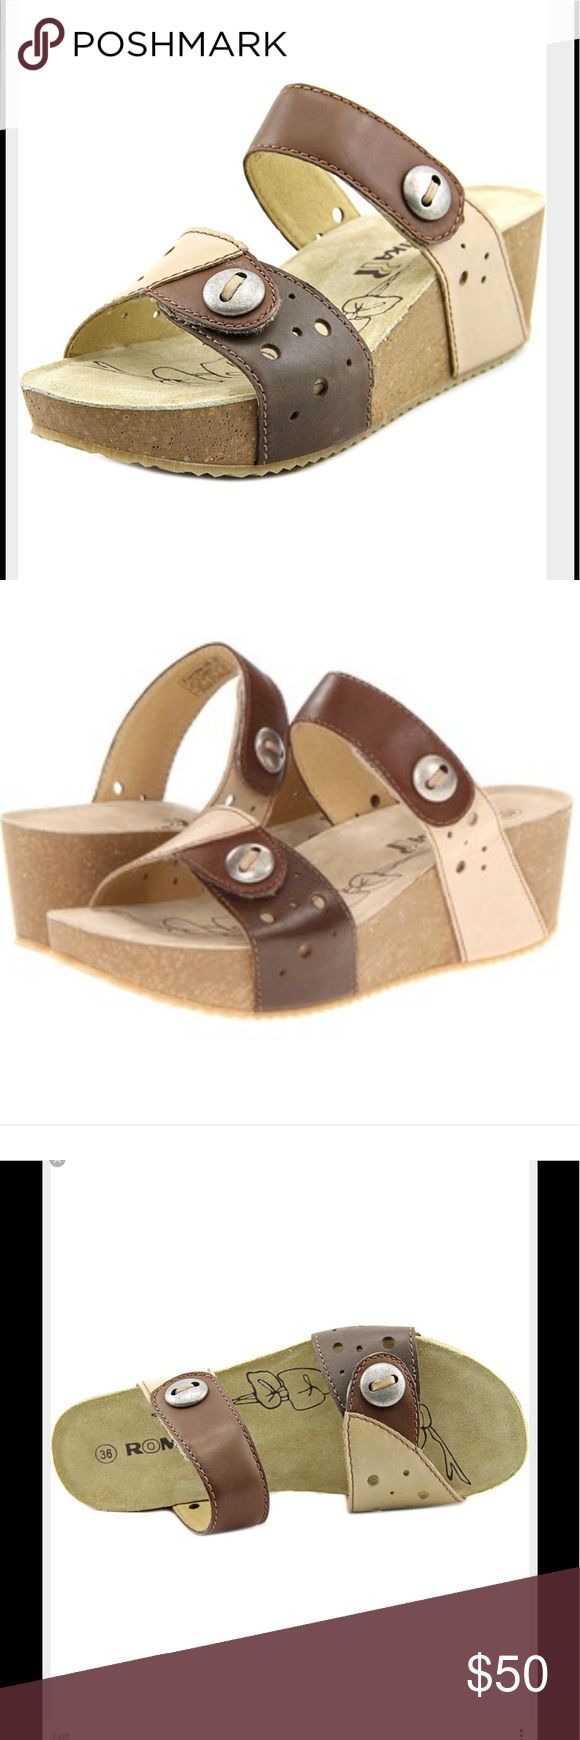 Romika Florida 06 Open Toe Cork Wedge Sandals New without box, Premium vegetable-dyed leather upper in a slide sandal style features color blocking, perforations and silver-tone button embellishments. Adjustable Velcro closures allow for easy on-and-off wear and a secure fit. Leather-lined footbed. Cork midsole offers support, stability and custom comfort as it conforms to your foot over time. Hardwearing and lightweight PU outsole delivers long-lasting durability. Measurements: Heel Height…